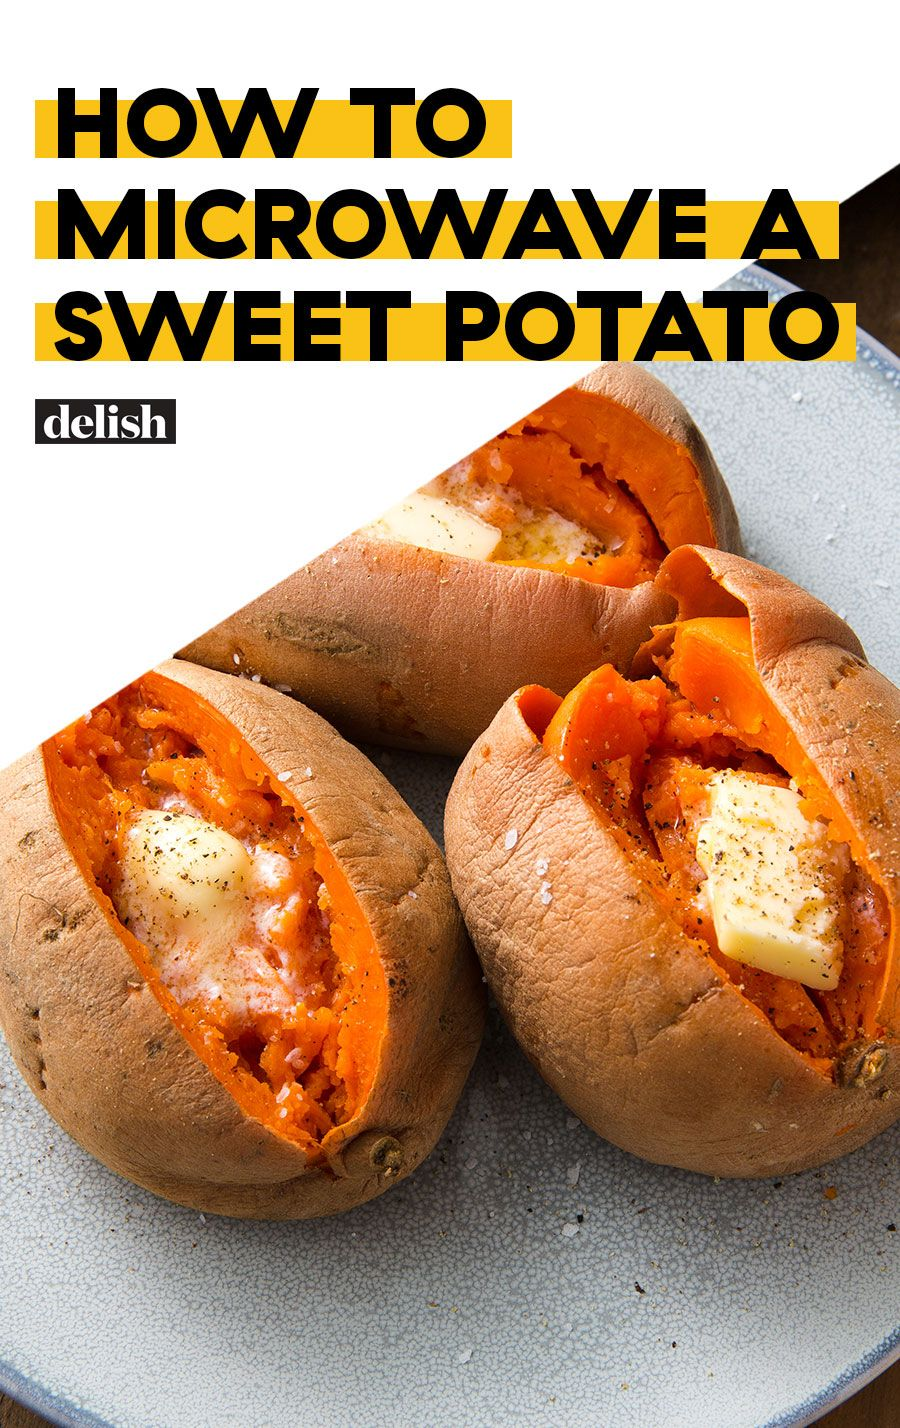 Microwave Sweet Potato   Recipe   Cooking How-Tos   Easy ...